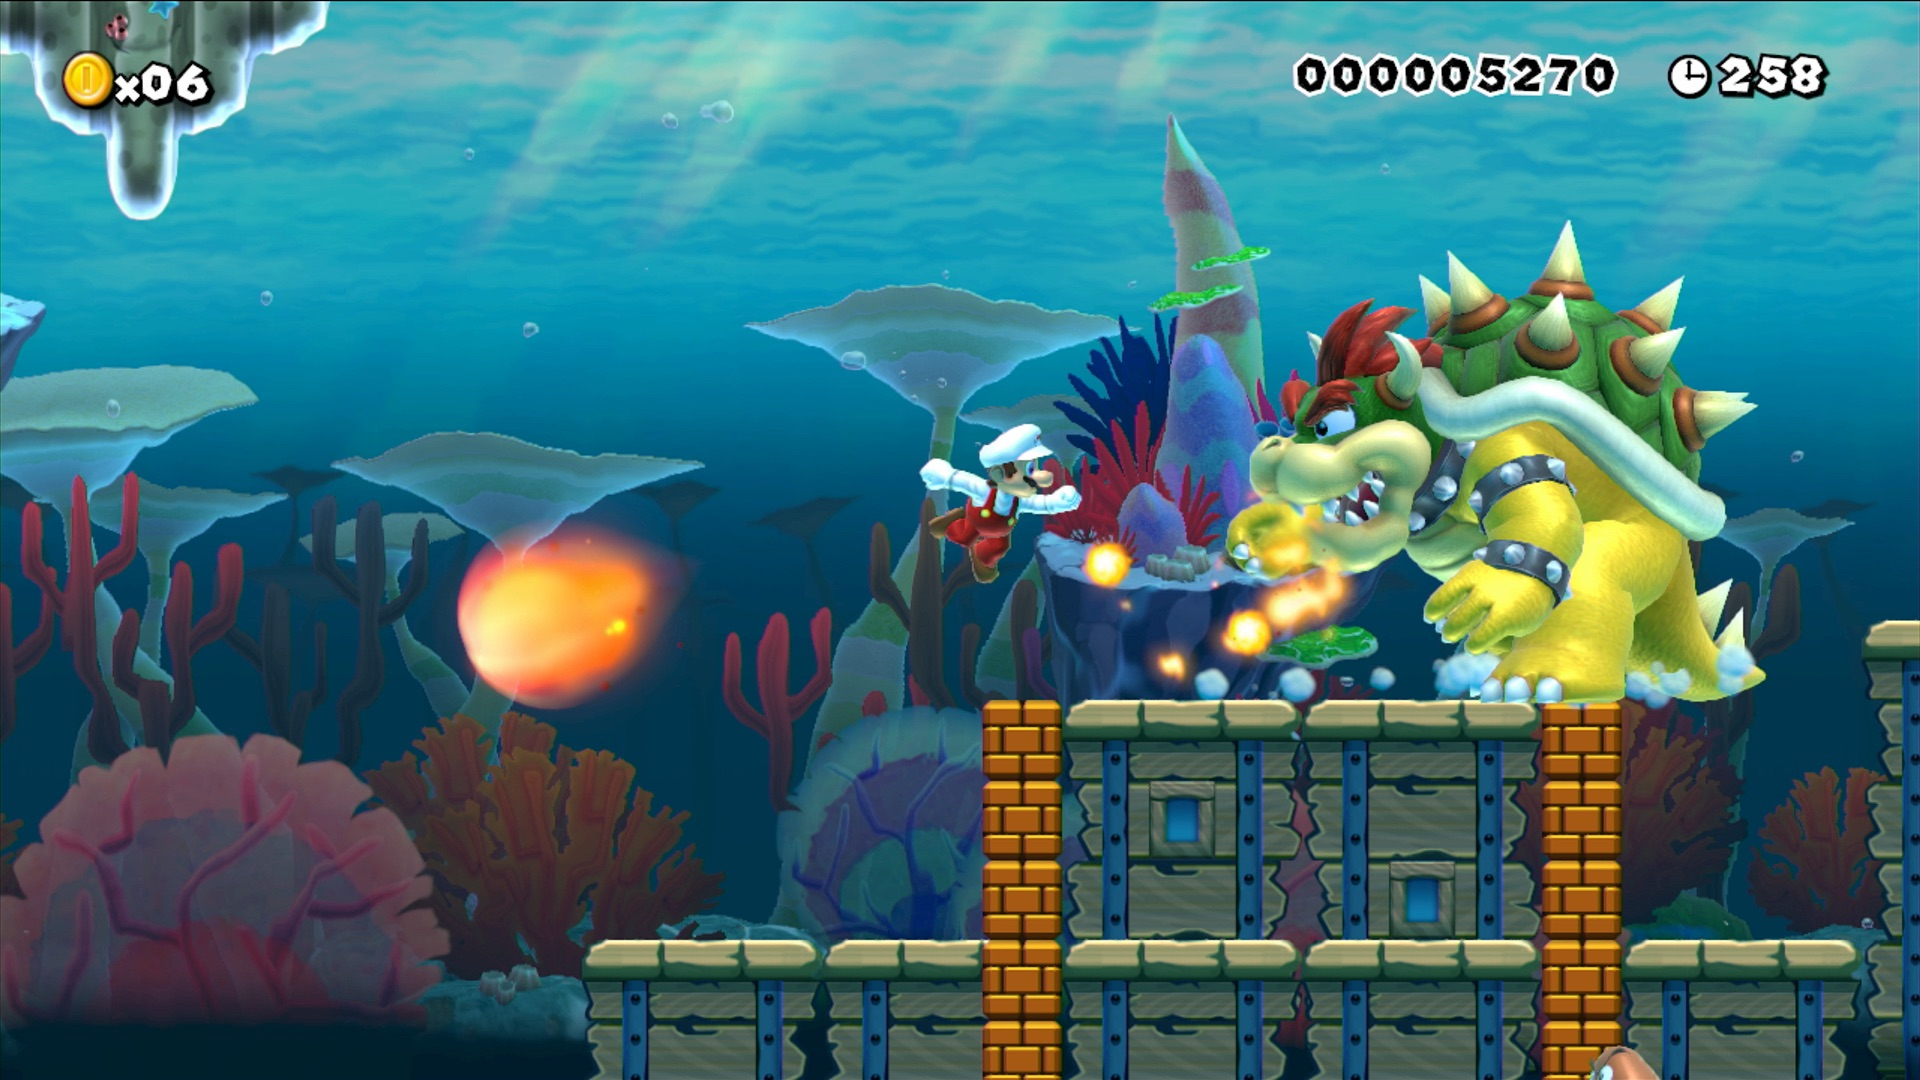 You can make your levels as difficult as you'd like in Super Mario Maker.